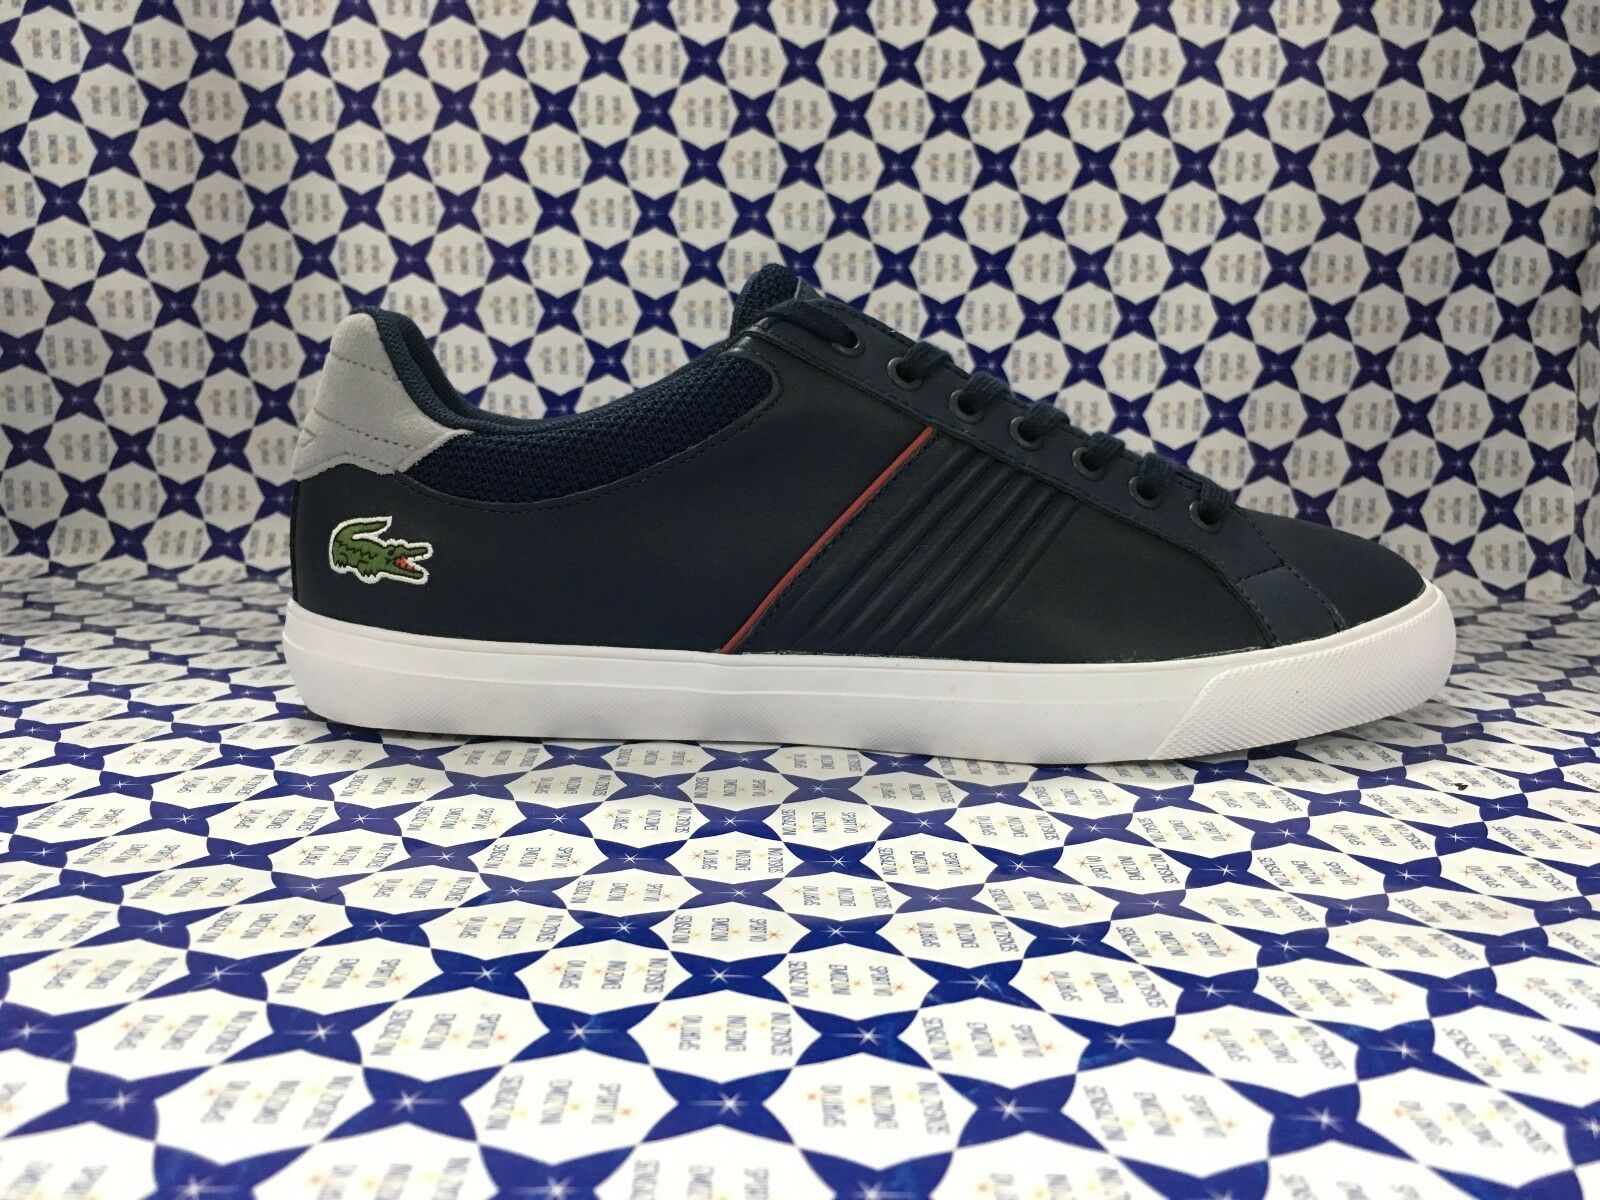 8a877a32e367e shoes LACOSTE men Sneakers 117 - blue - CAM1031 Fairlead Navy ...